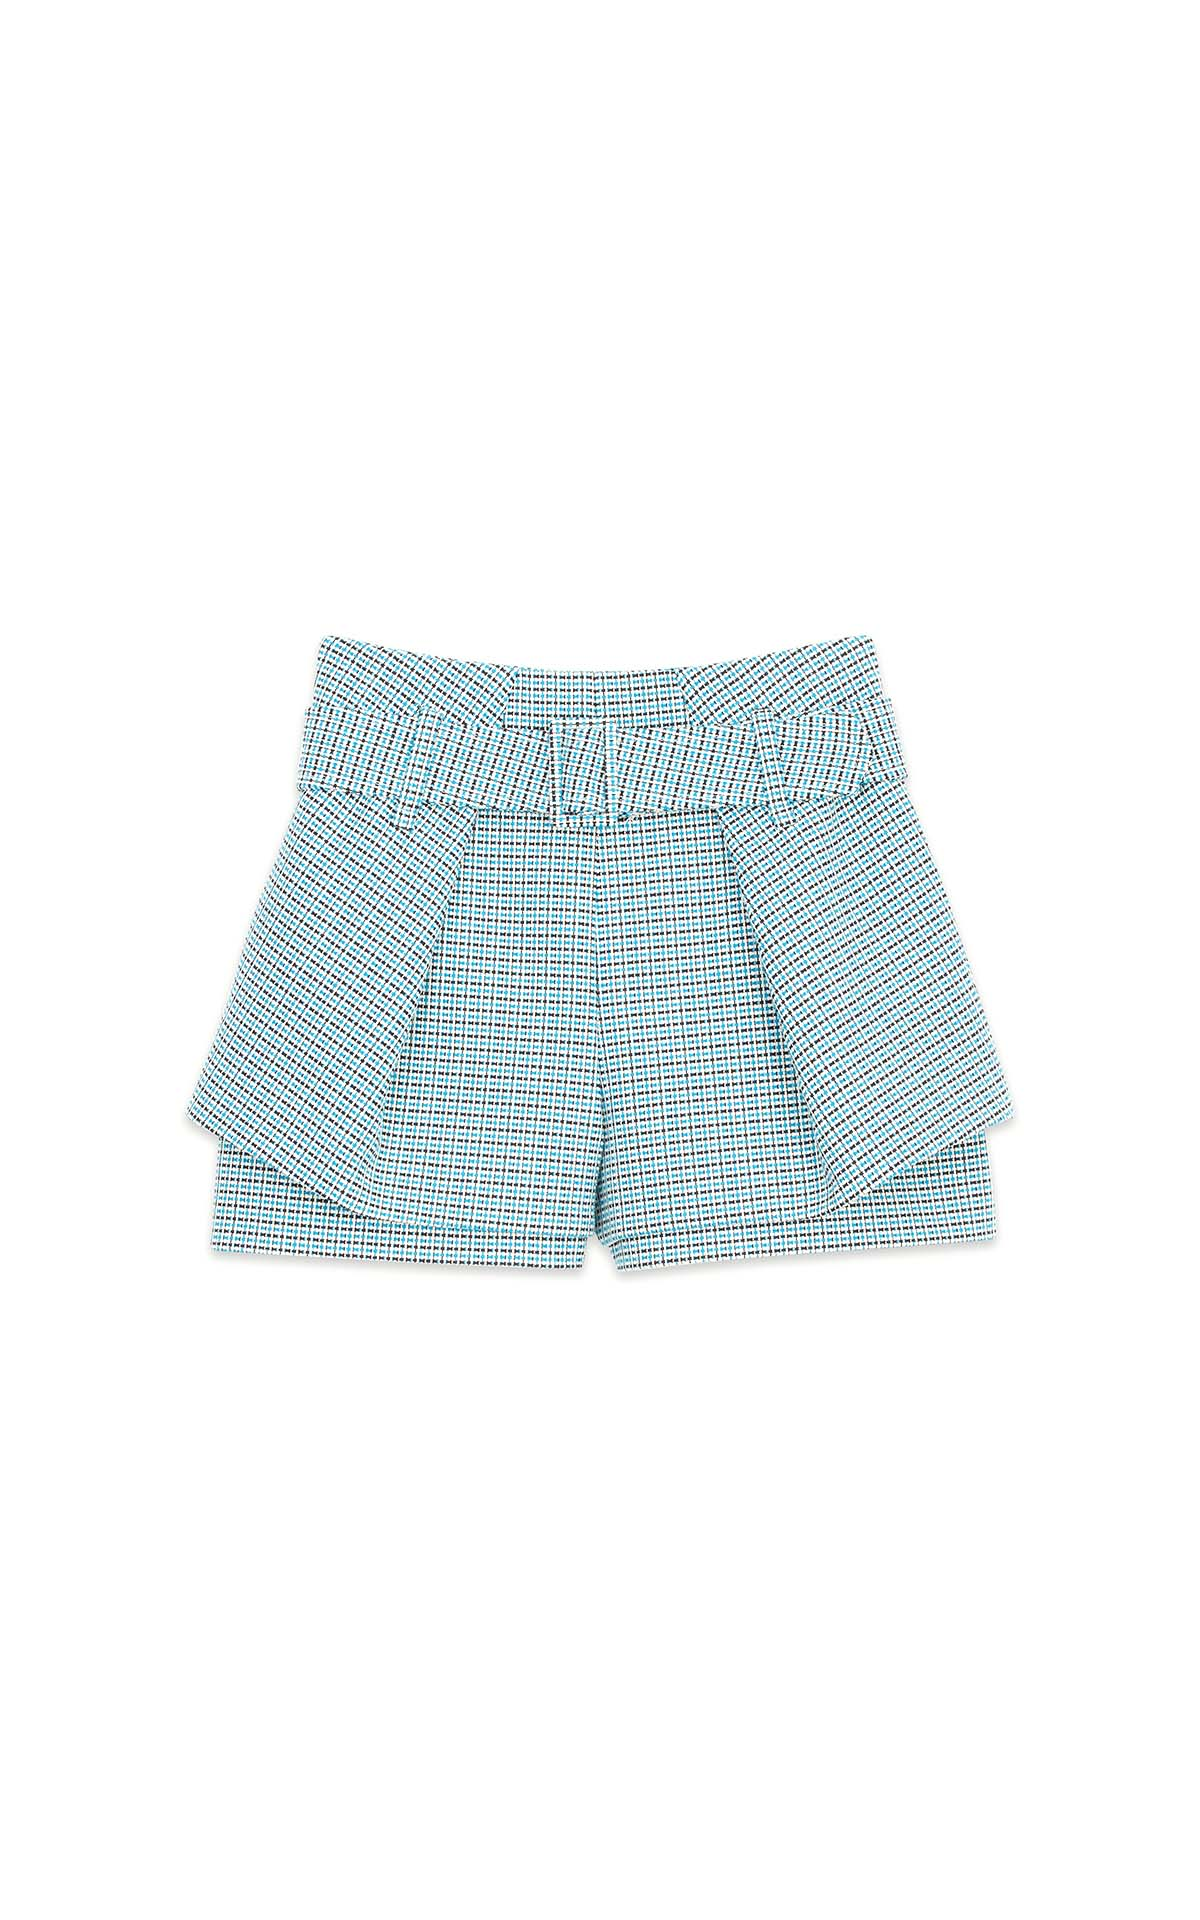 Blue and white checked tweed-style shorts for woman Maje